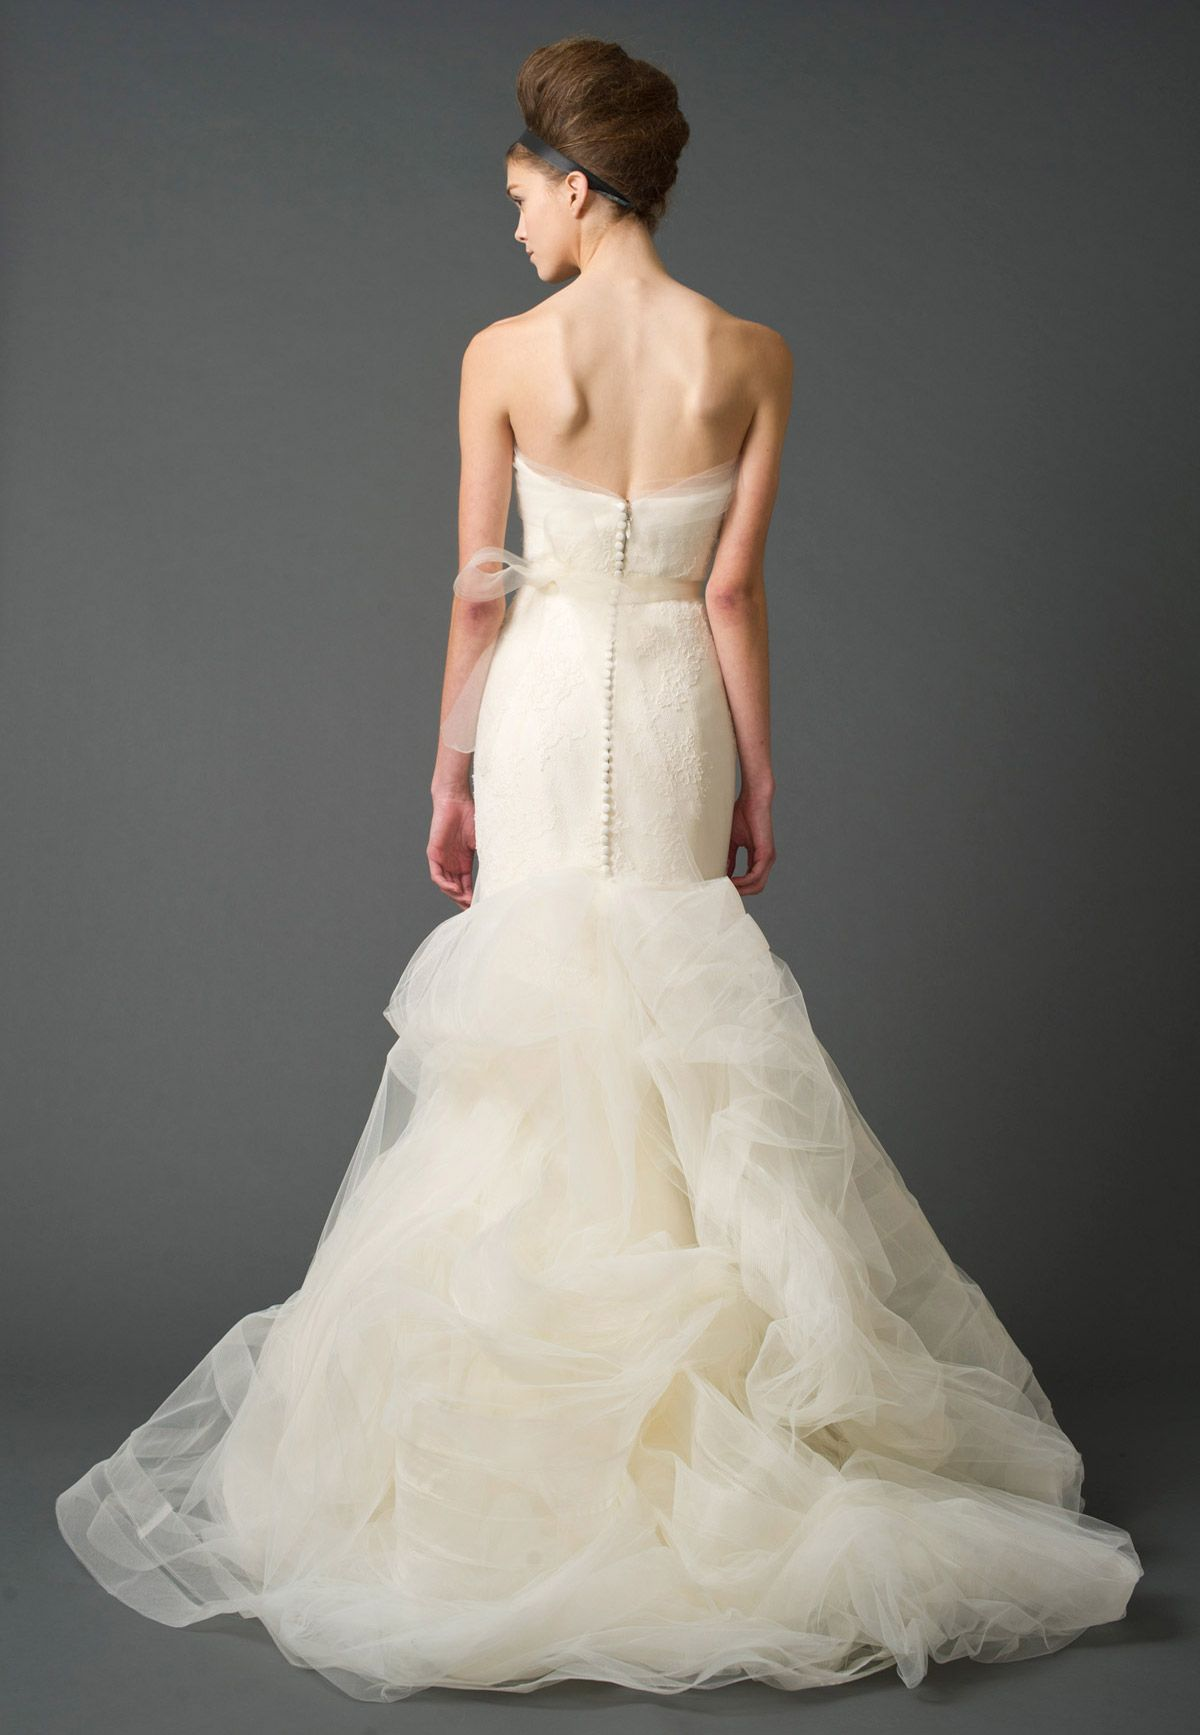 Georgina Back Wedding Dresses, Bridal Gowns by Vera Wang | Iconic ...